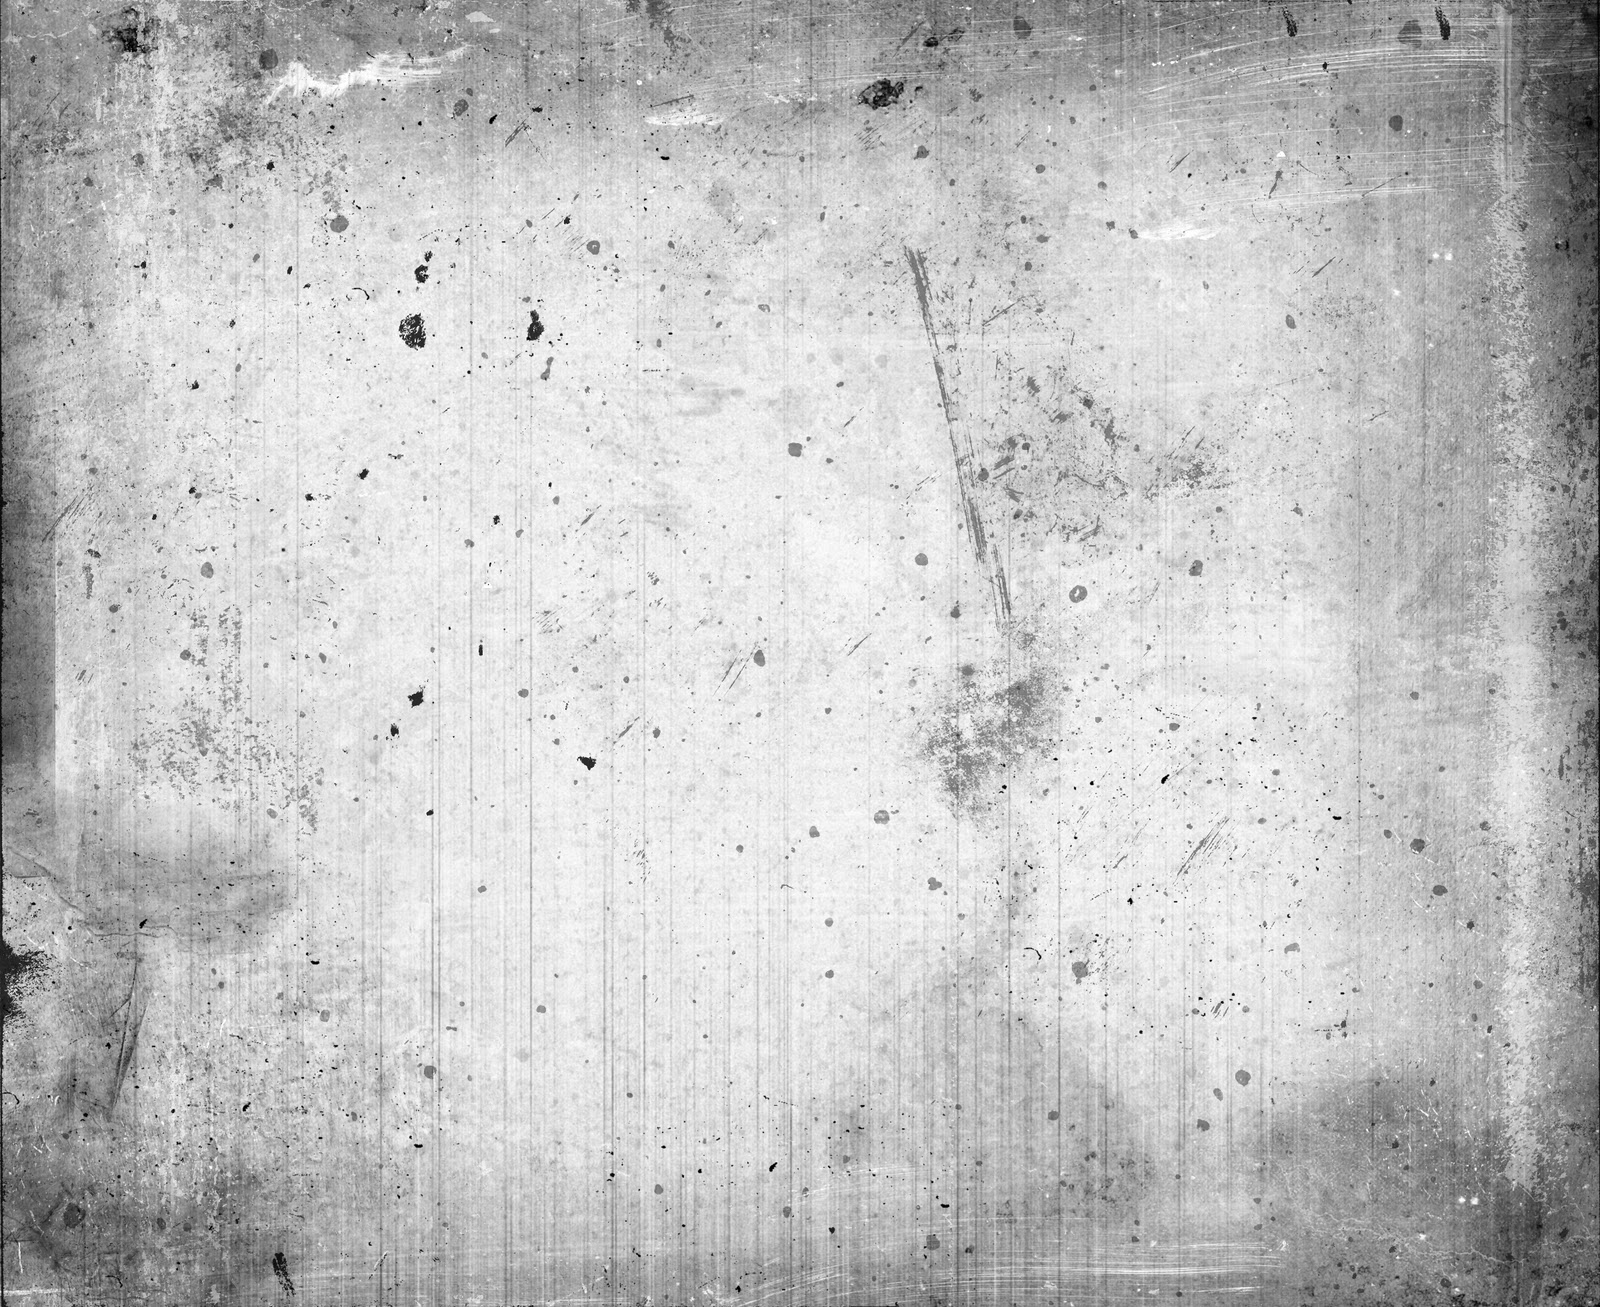 Grungetexture Crepuscular Grunge Texture Backgrounds